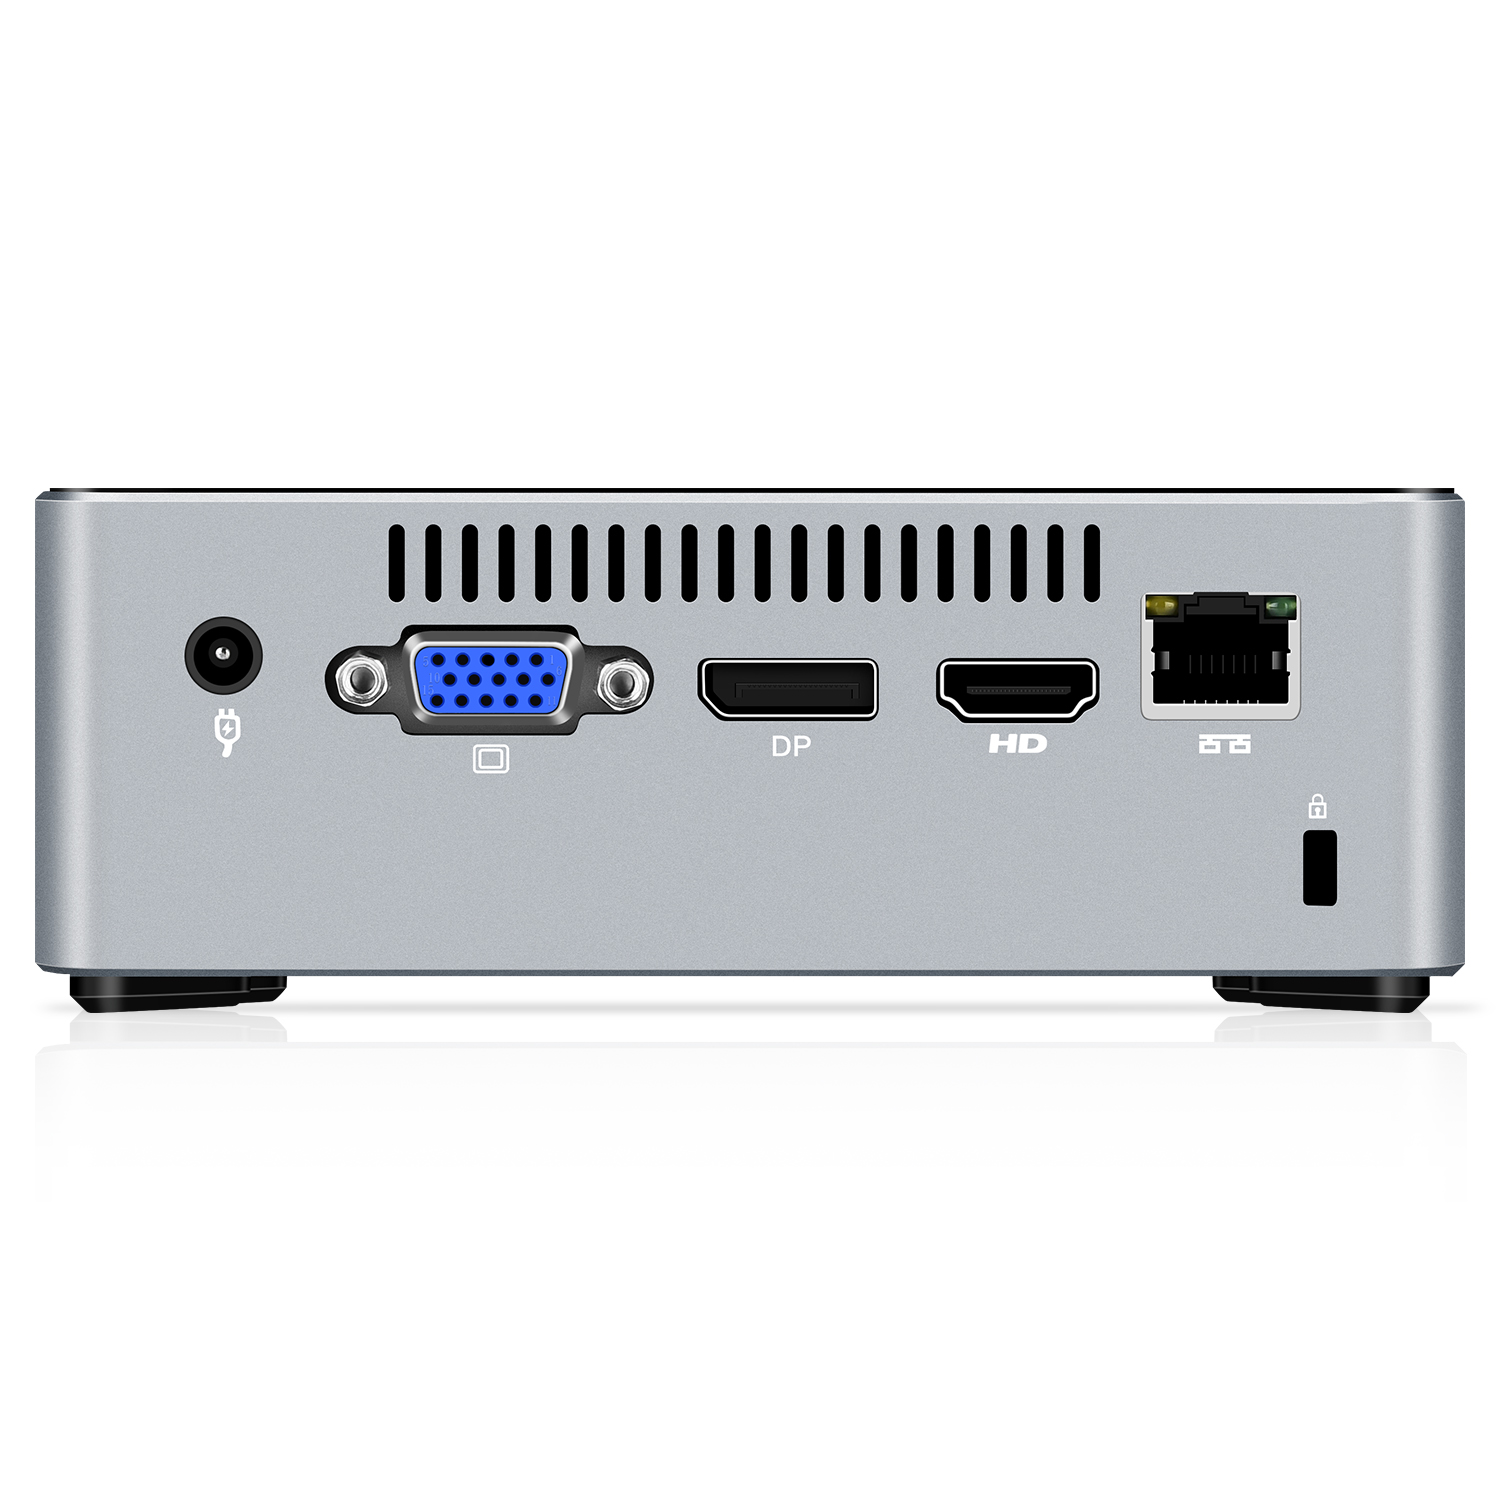 Mini pc with Intel core i3/i5/i7